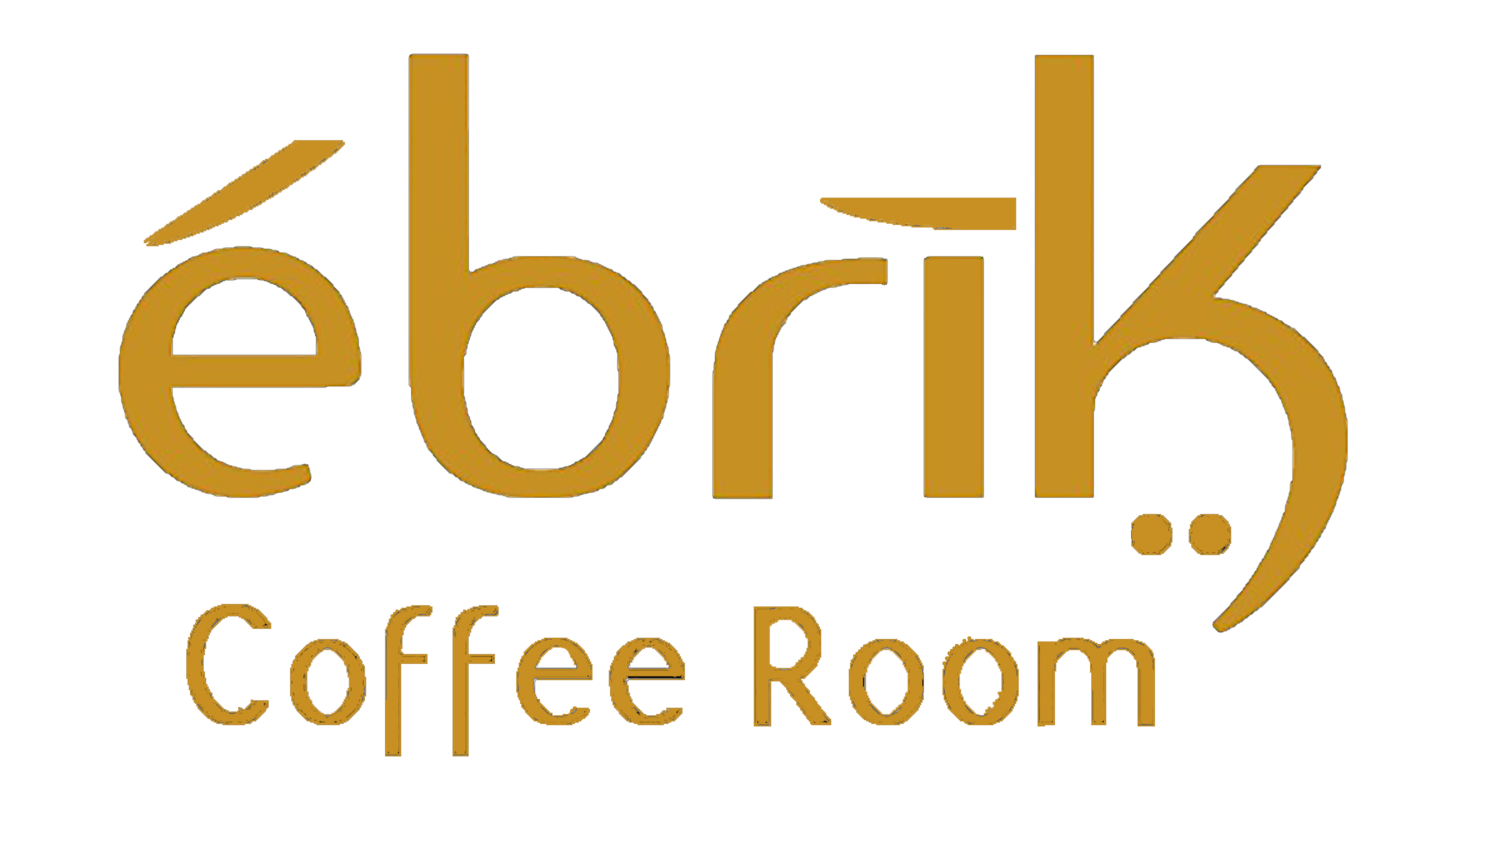 Ébrìk Coffee Room